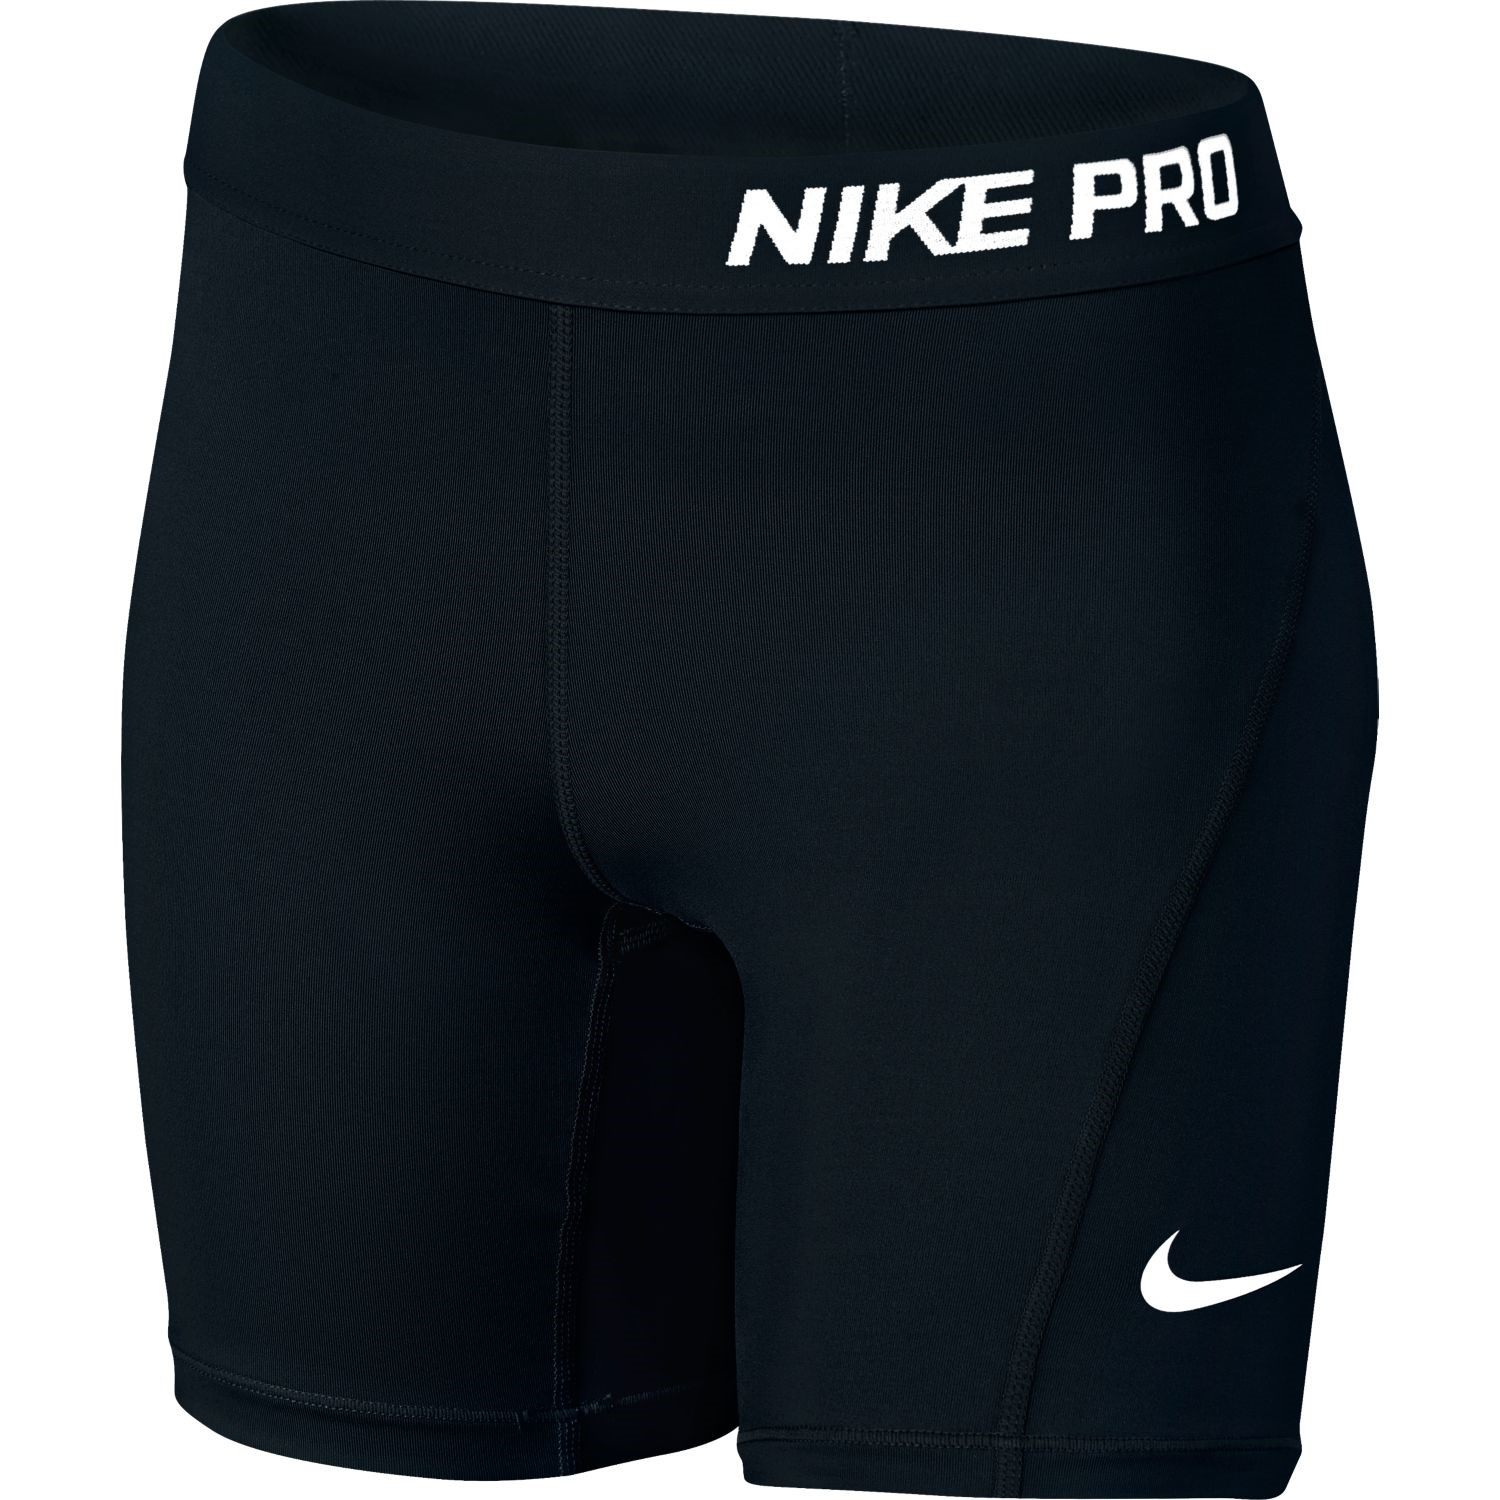 Half Pro Training Cool Tights Nike Short Blackwhite Kids Girls qZwYdd1XxU